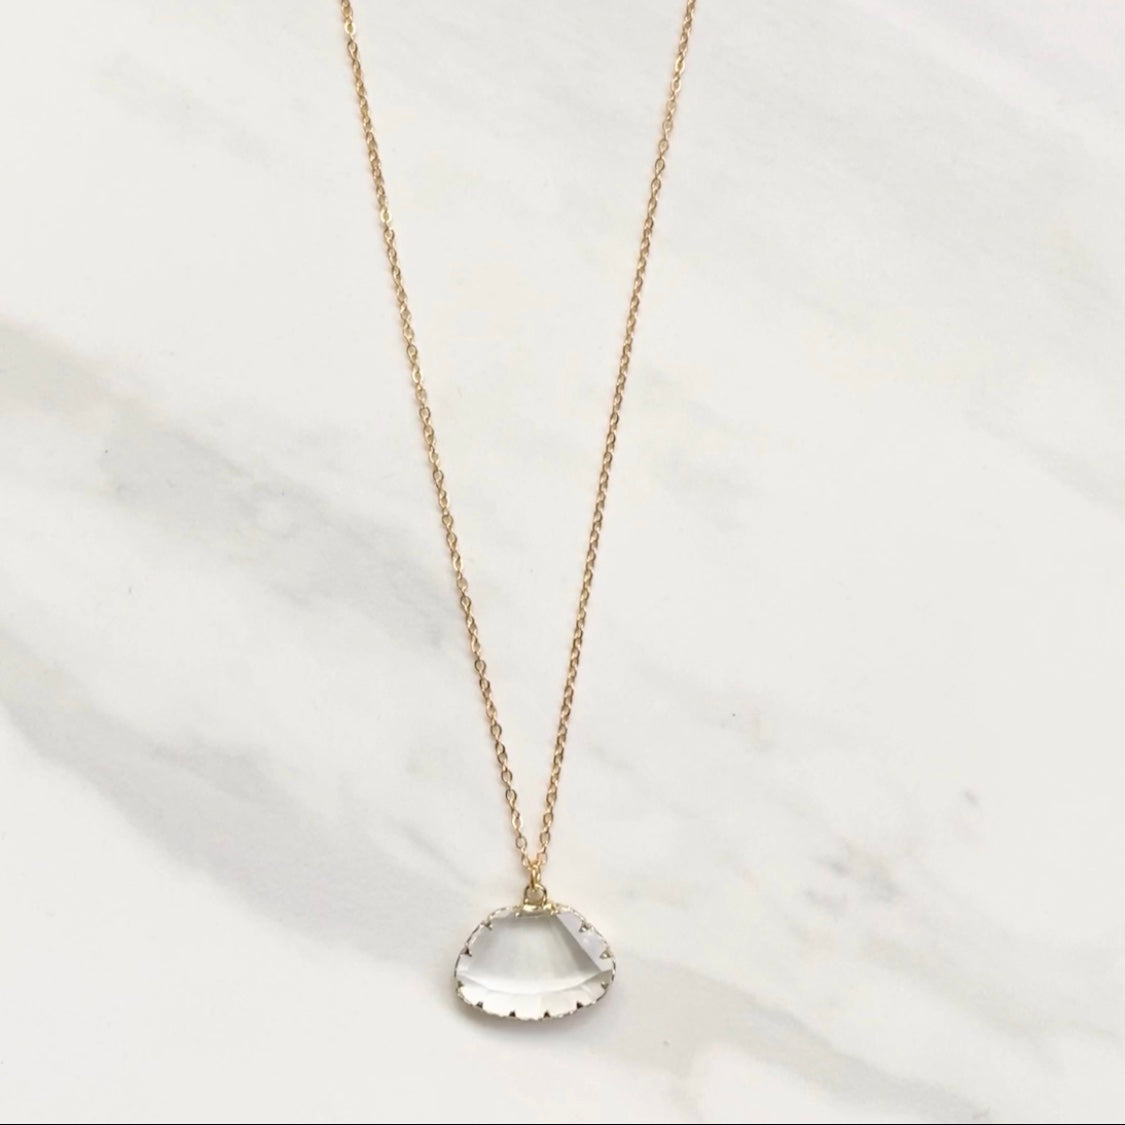 Diamond In The Rough Pendant Necklace - Dainty Hooligan